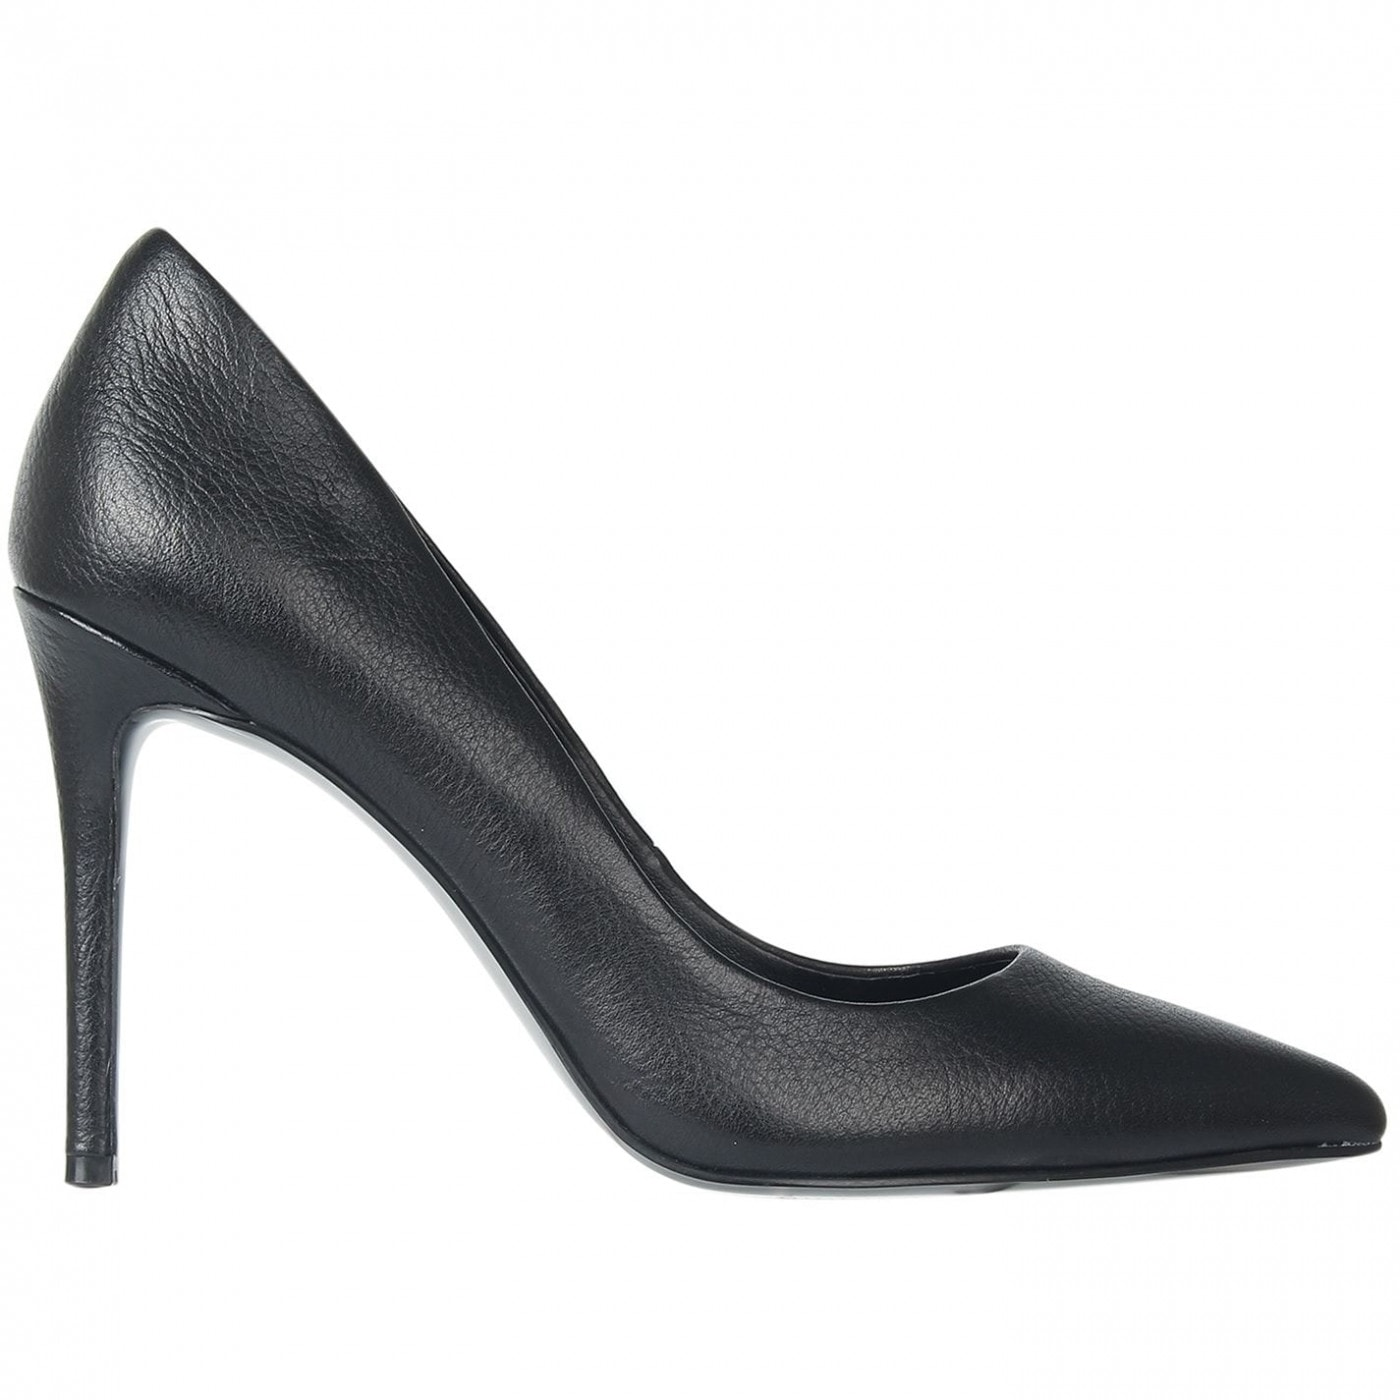 Linea Stiletto High Heel Shoes